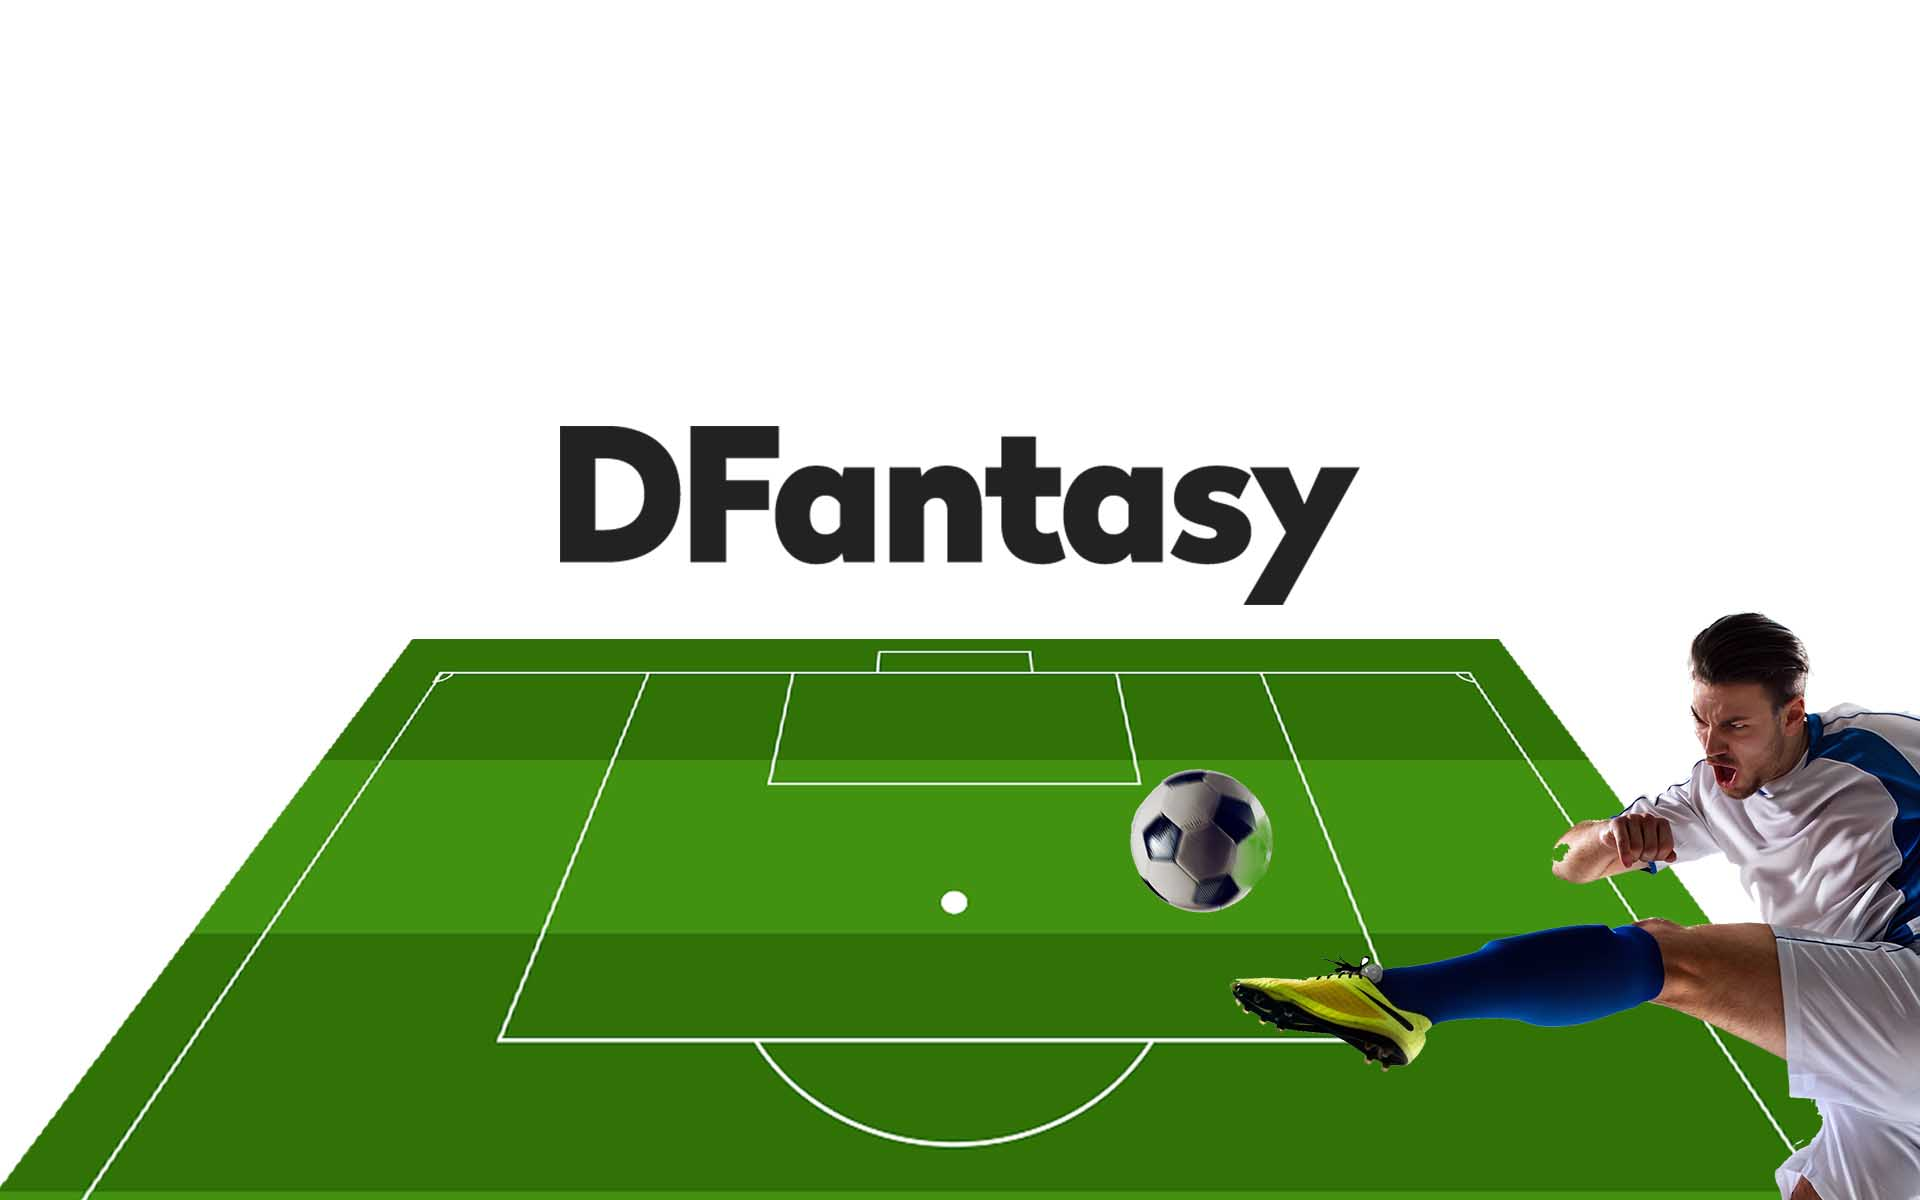 DFantasy Launches Highly Anticipated ICO Backed By World's First Democratized Global Fantasy Sports Betting Platform Based On Blockchain Technology – Making Online Betting Fair & More Profitable